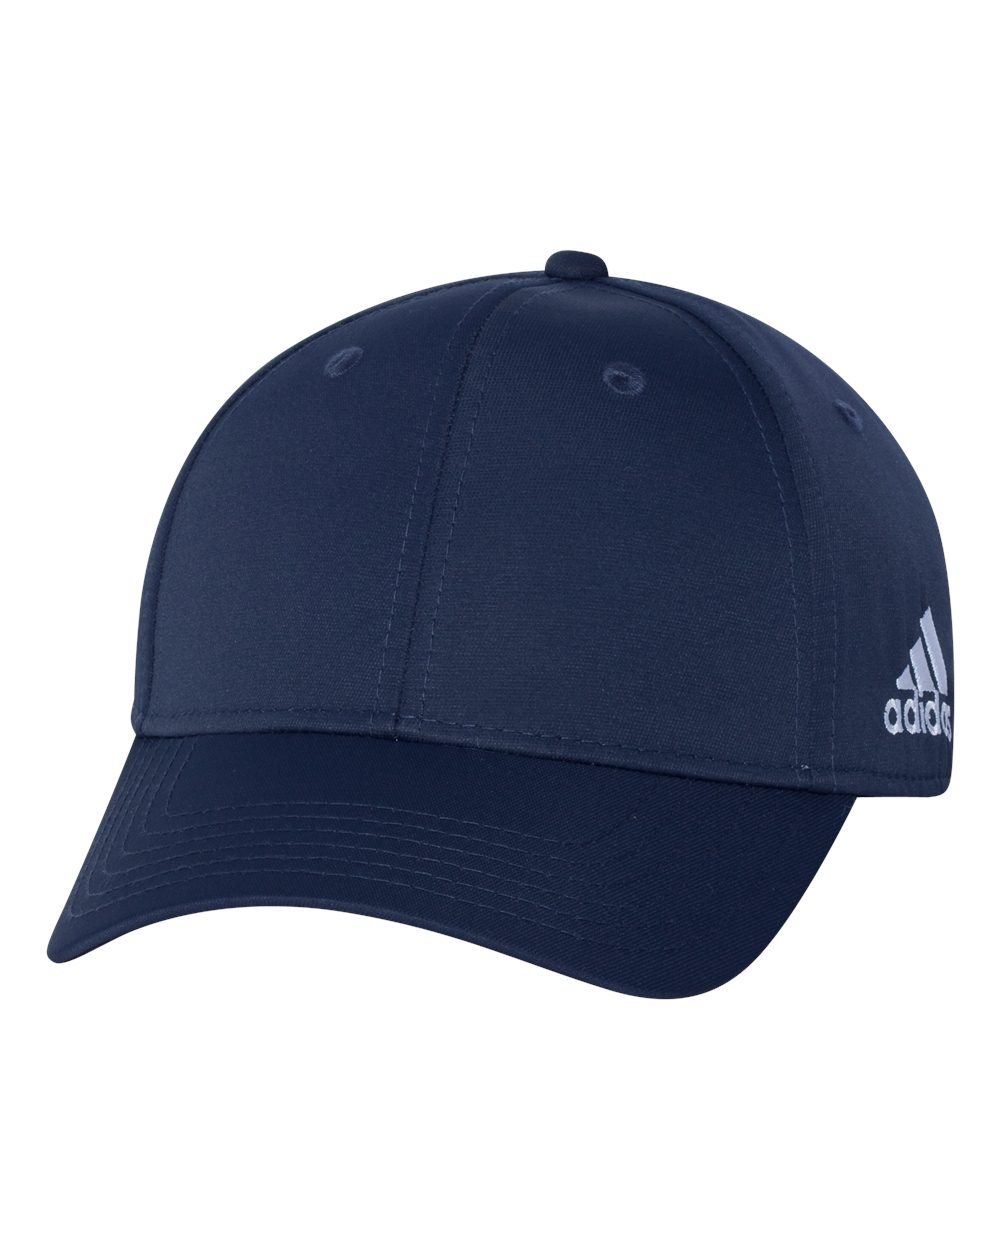 Adidas Golf Performance Max Structured Cap A600